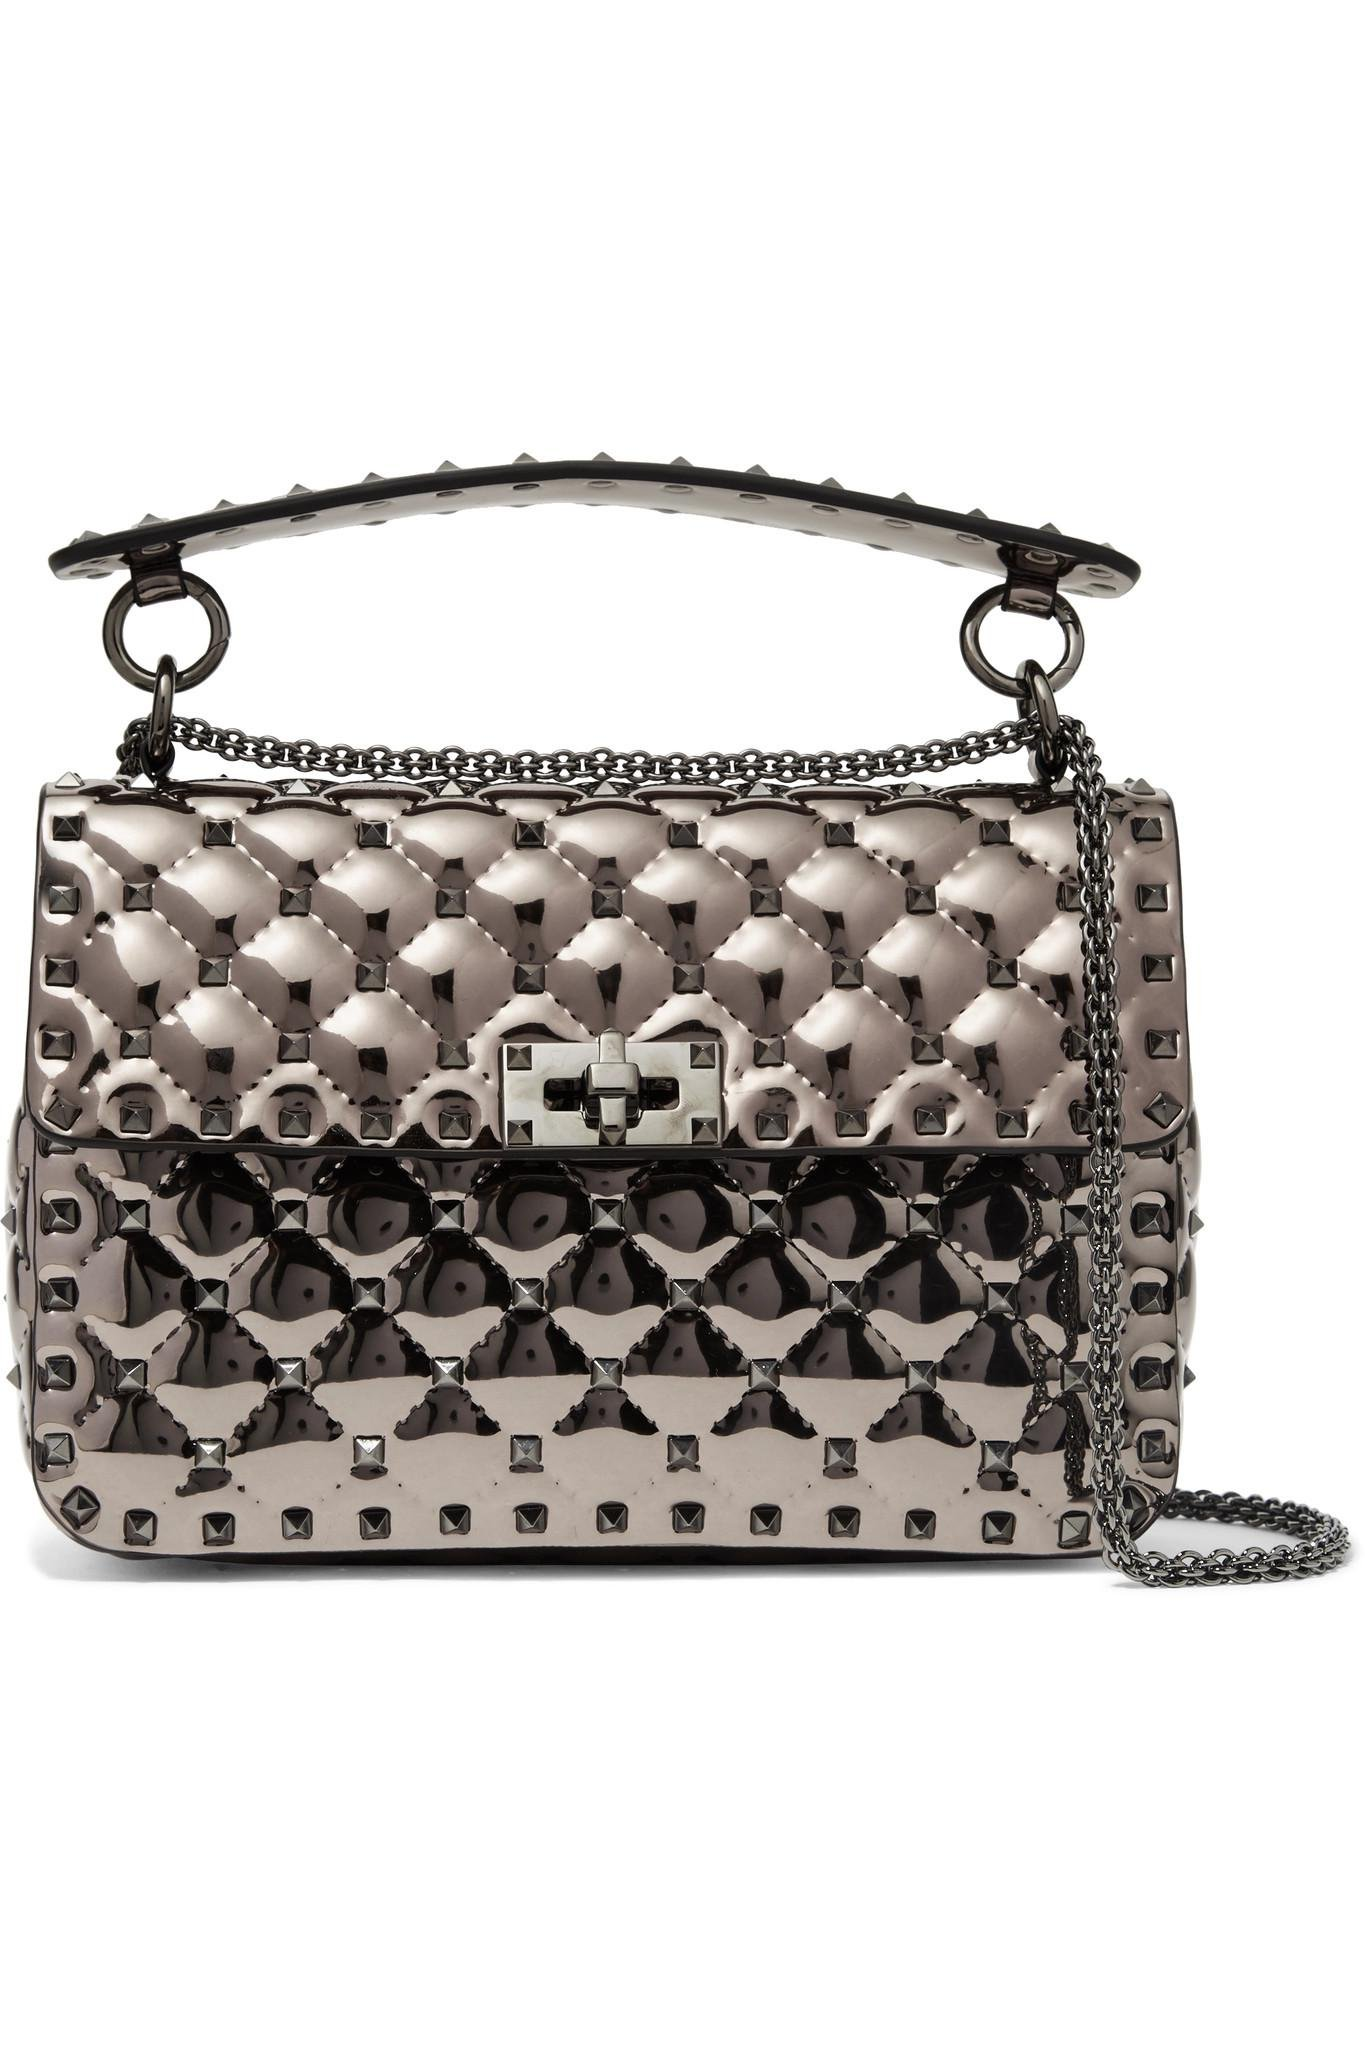 f20b7fb5b2 Gallery. Previously sold at: NET-A-PORTER · Women's Valentino Rockstud Bags